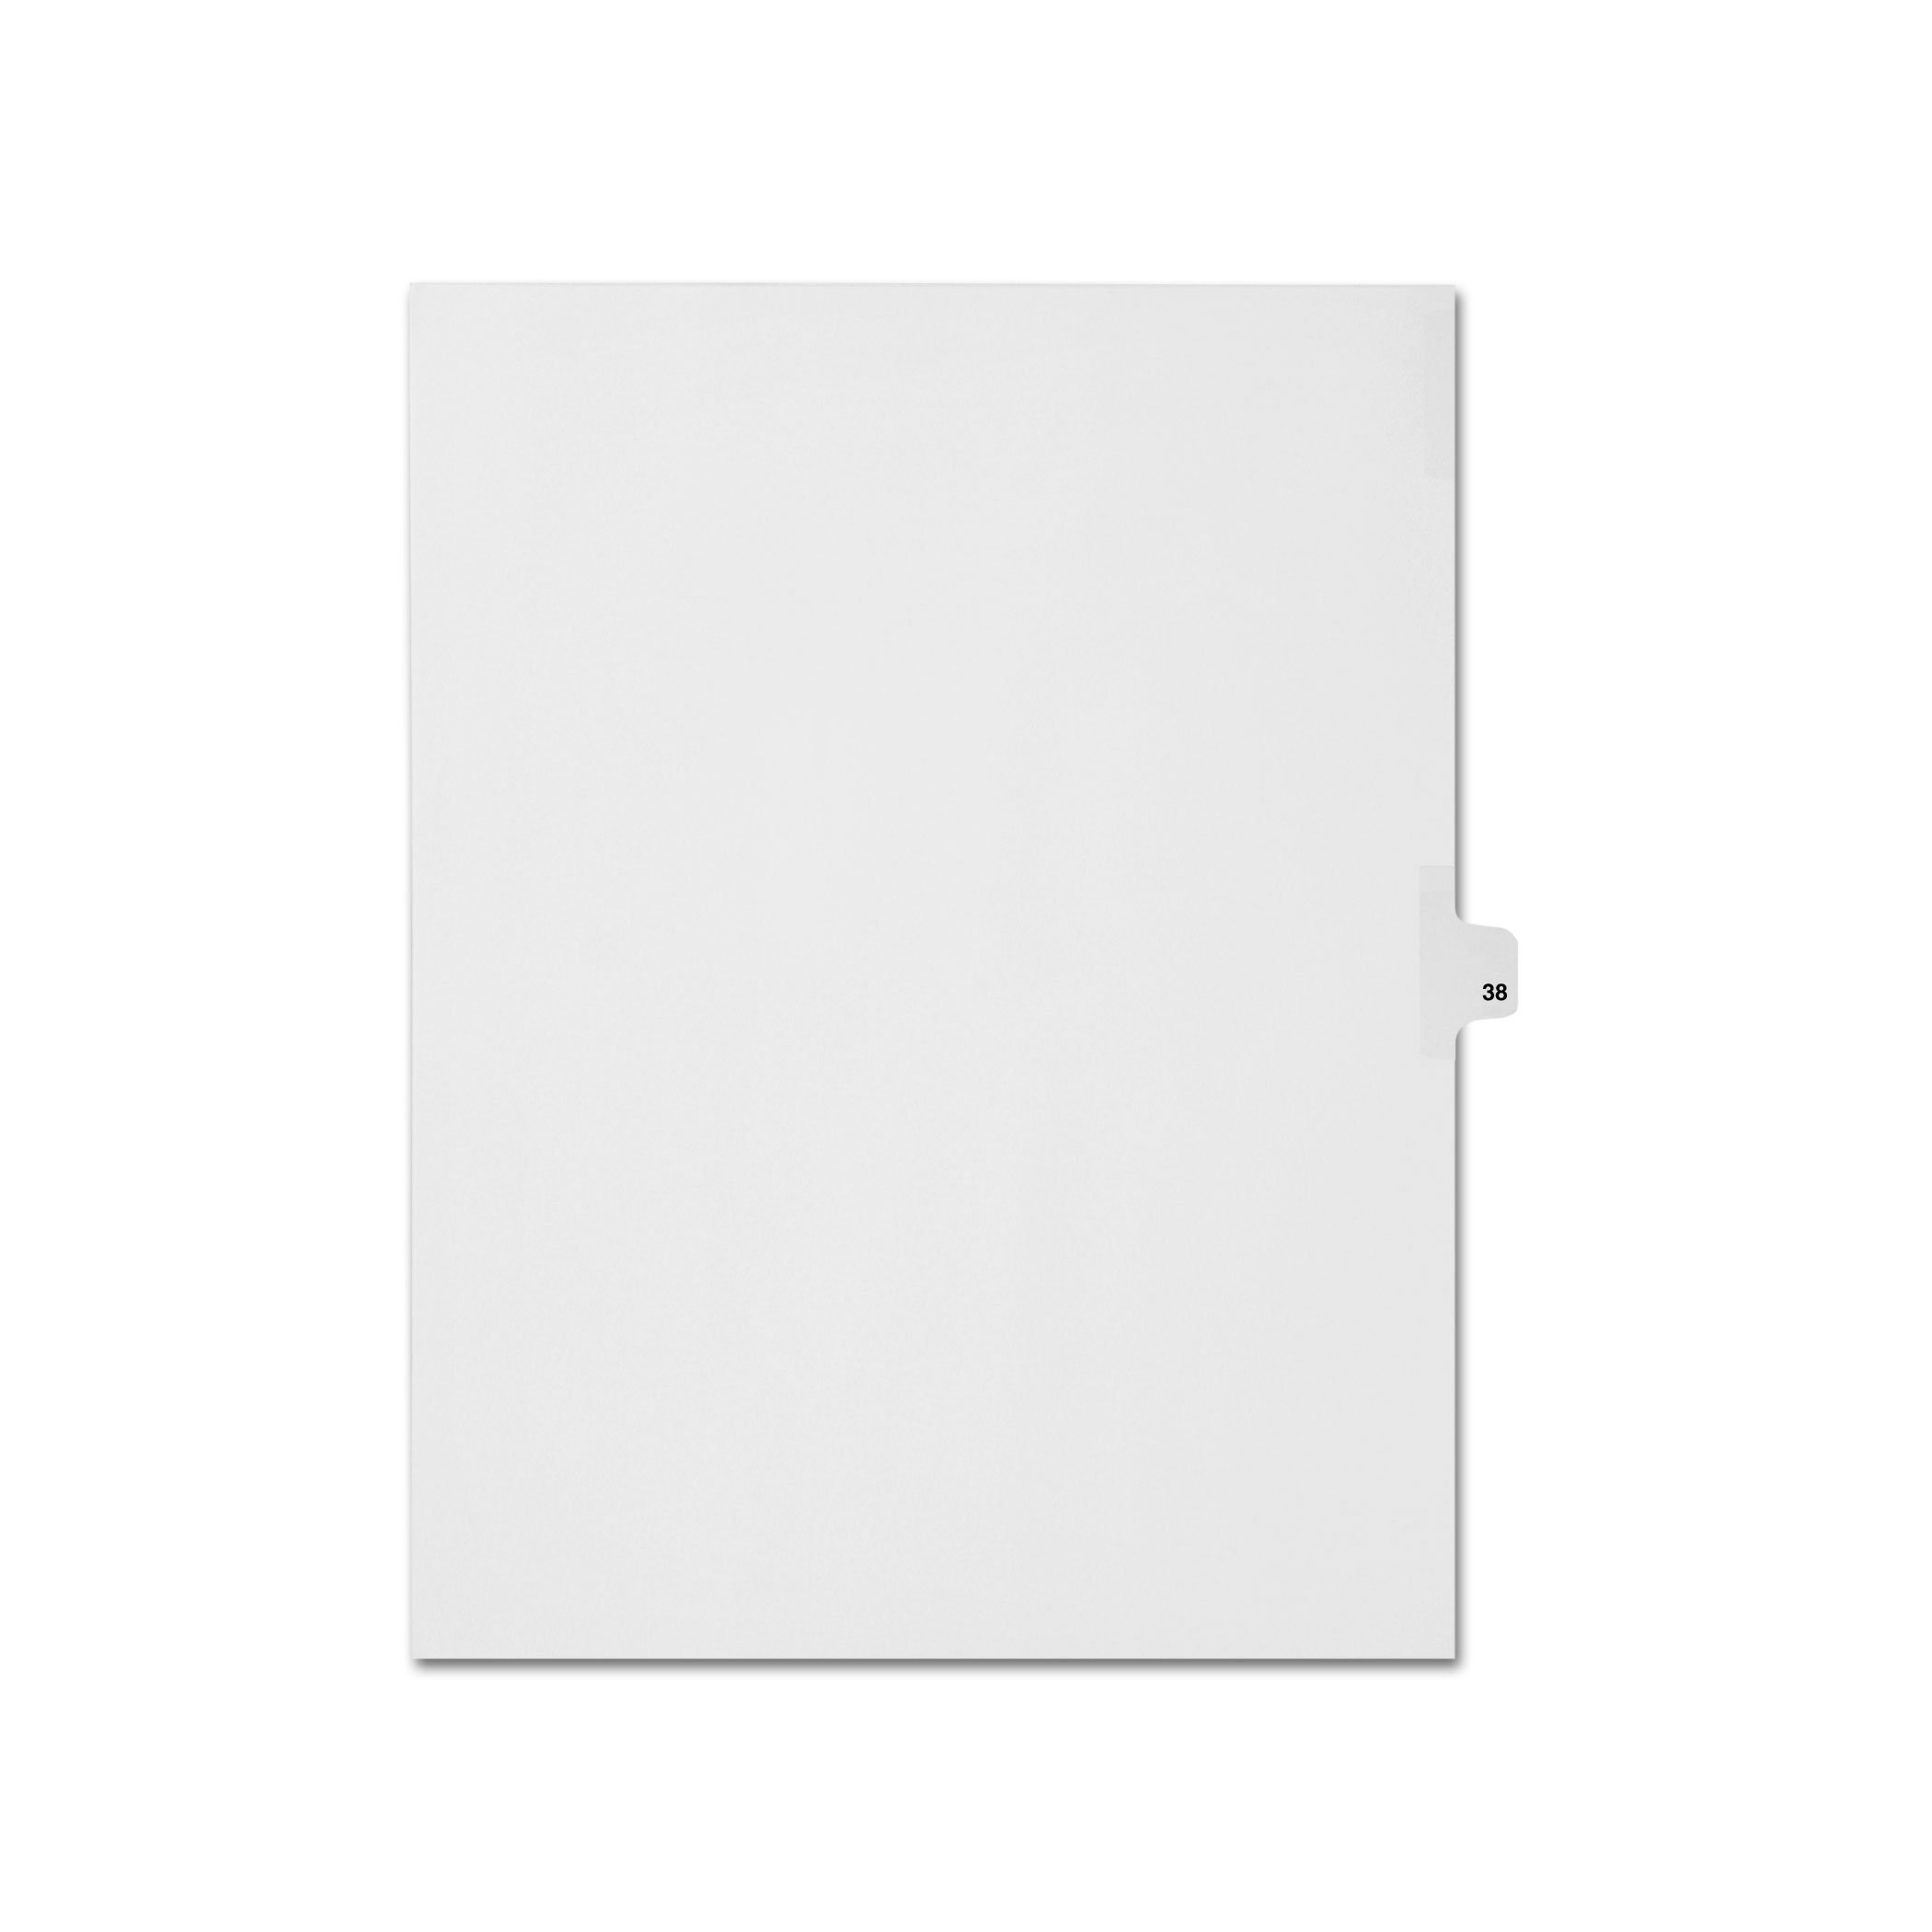 AMZfiling Individual Legal Index Tab Dividers, Compatible with Avery- Number 38, Letter Size, White, Side Tabs, Position 13 (25 Sheets/pkg)